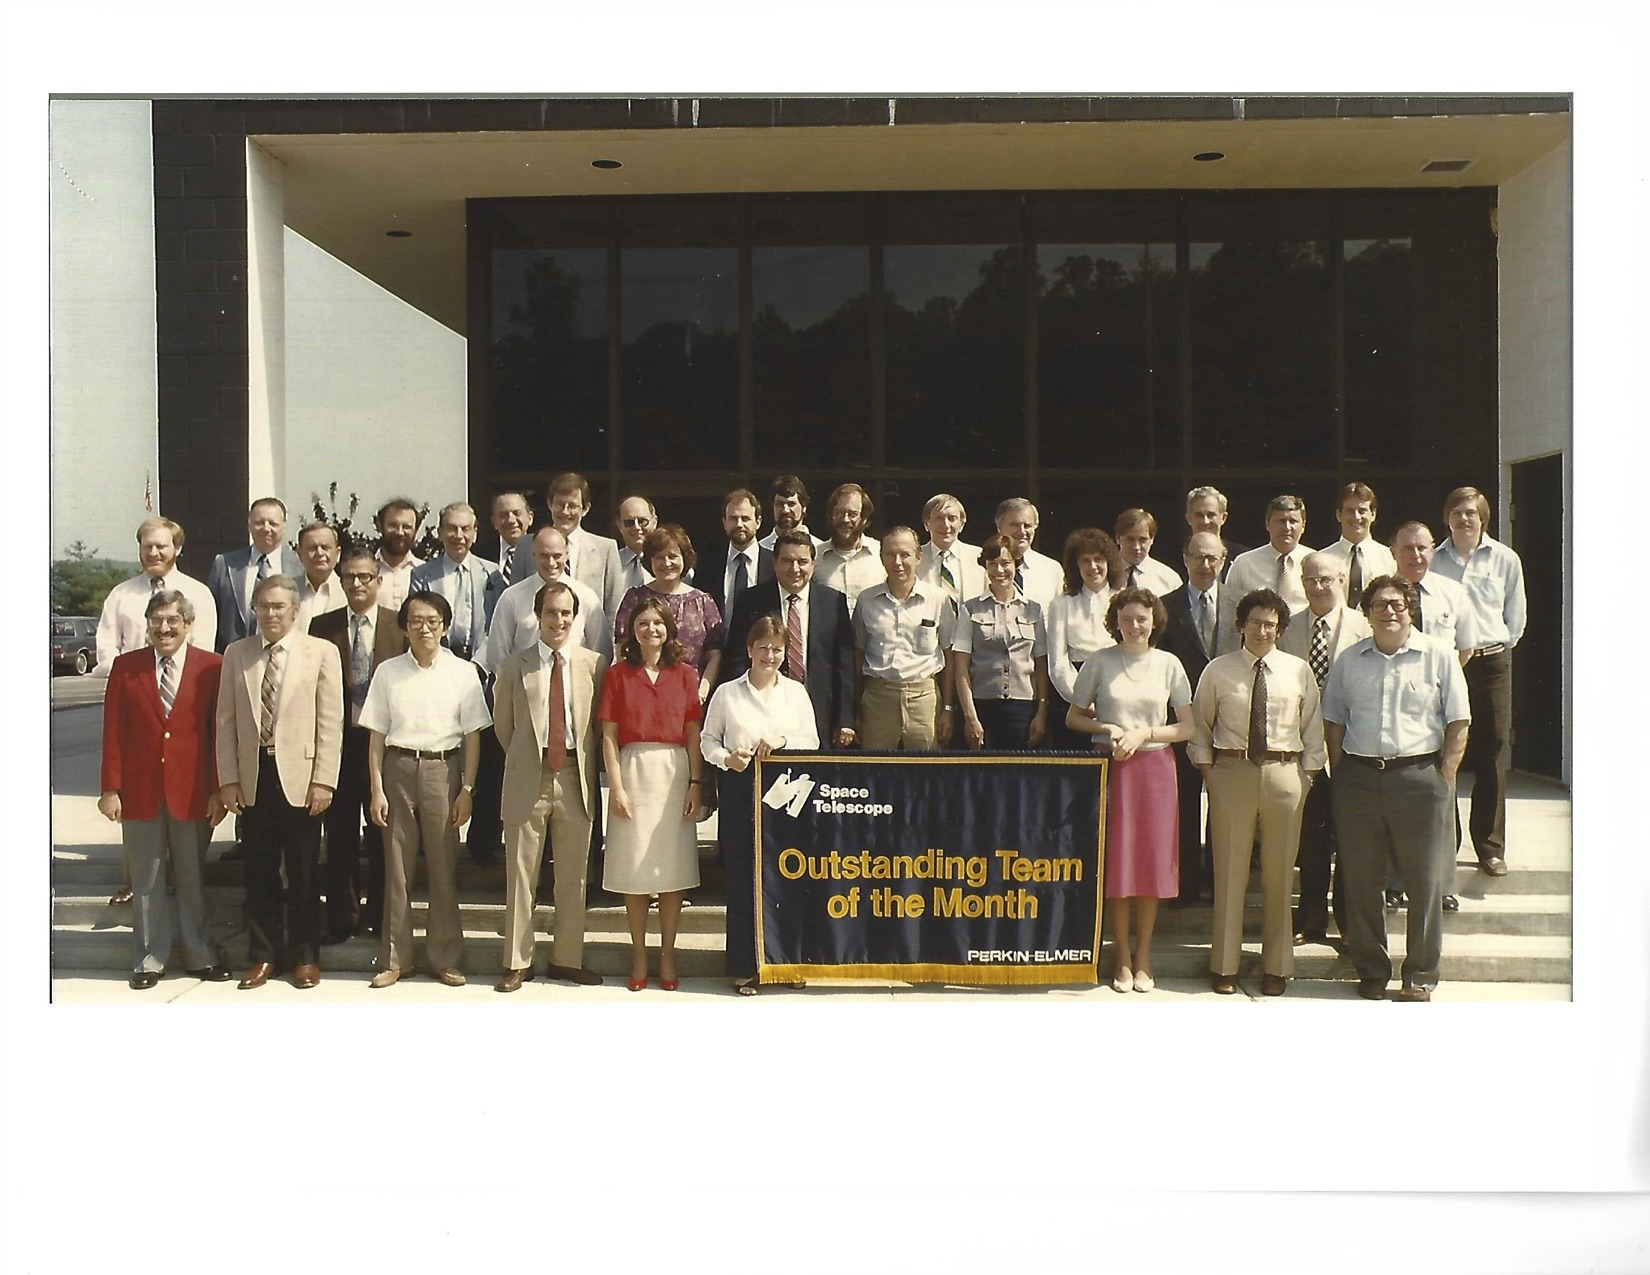 The space telescope team of the month in June 1984. Sam Palasciano is in the center with jacket and red tie. The names of some of the team are identified in the next two photos.